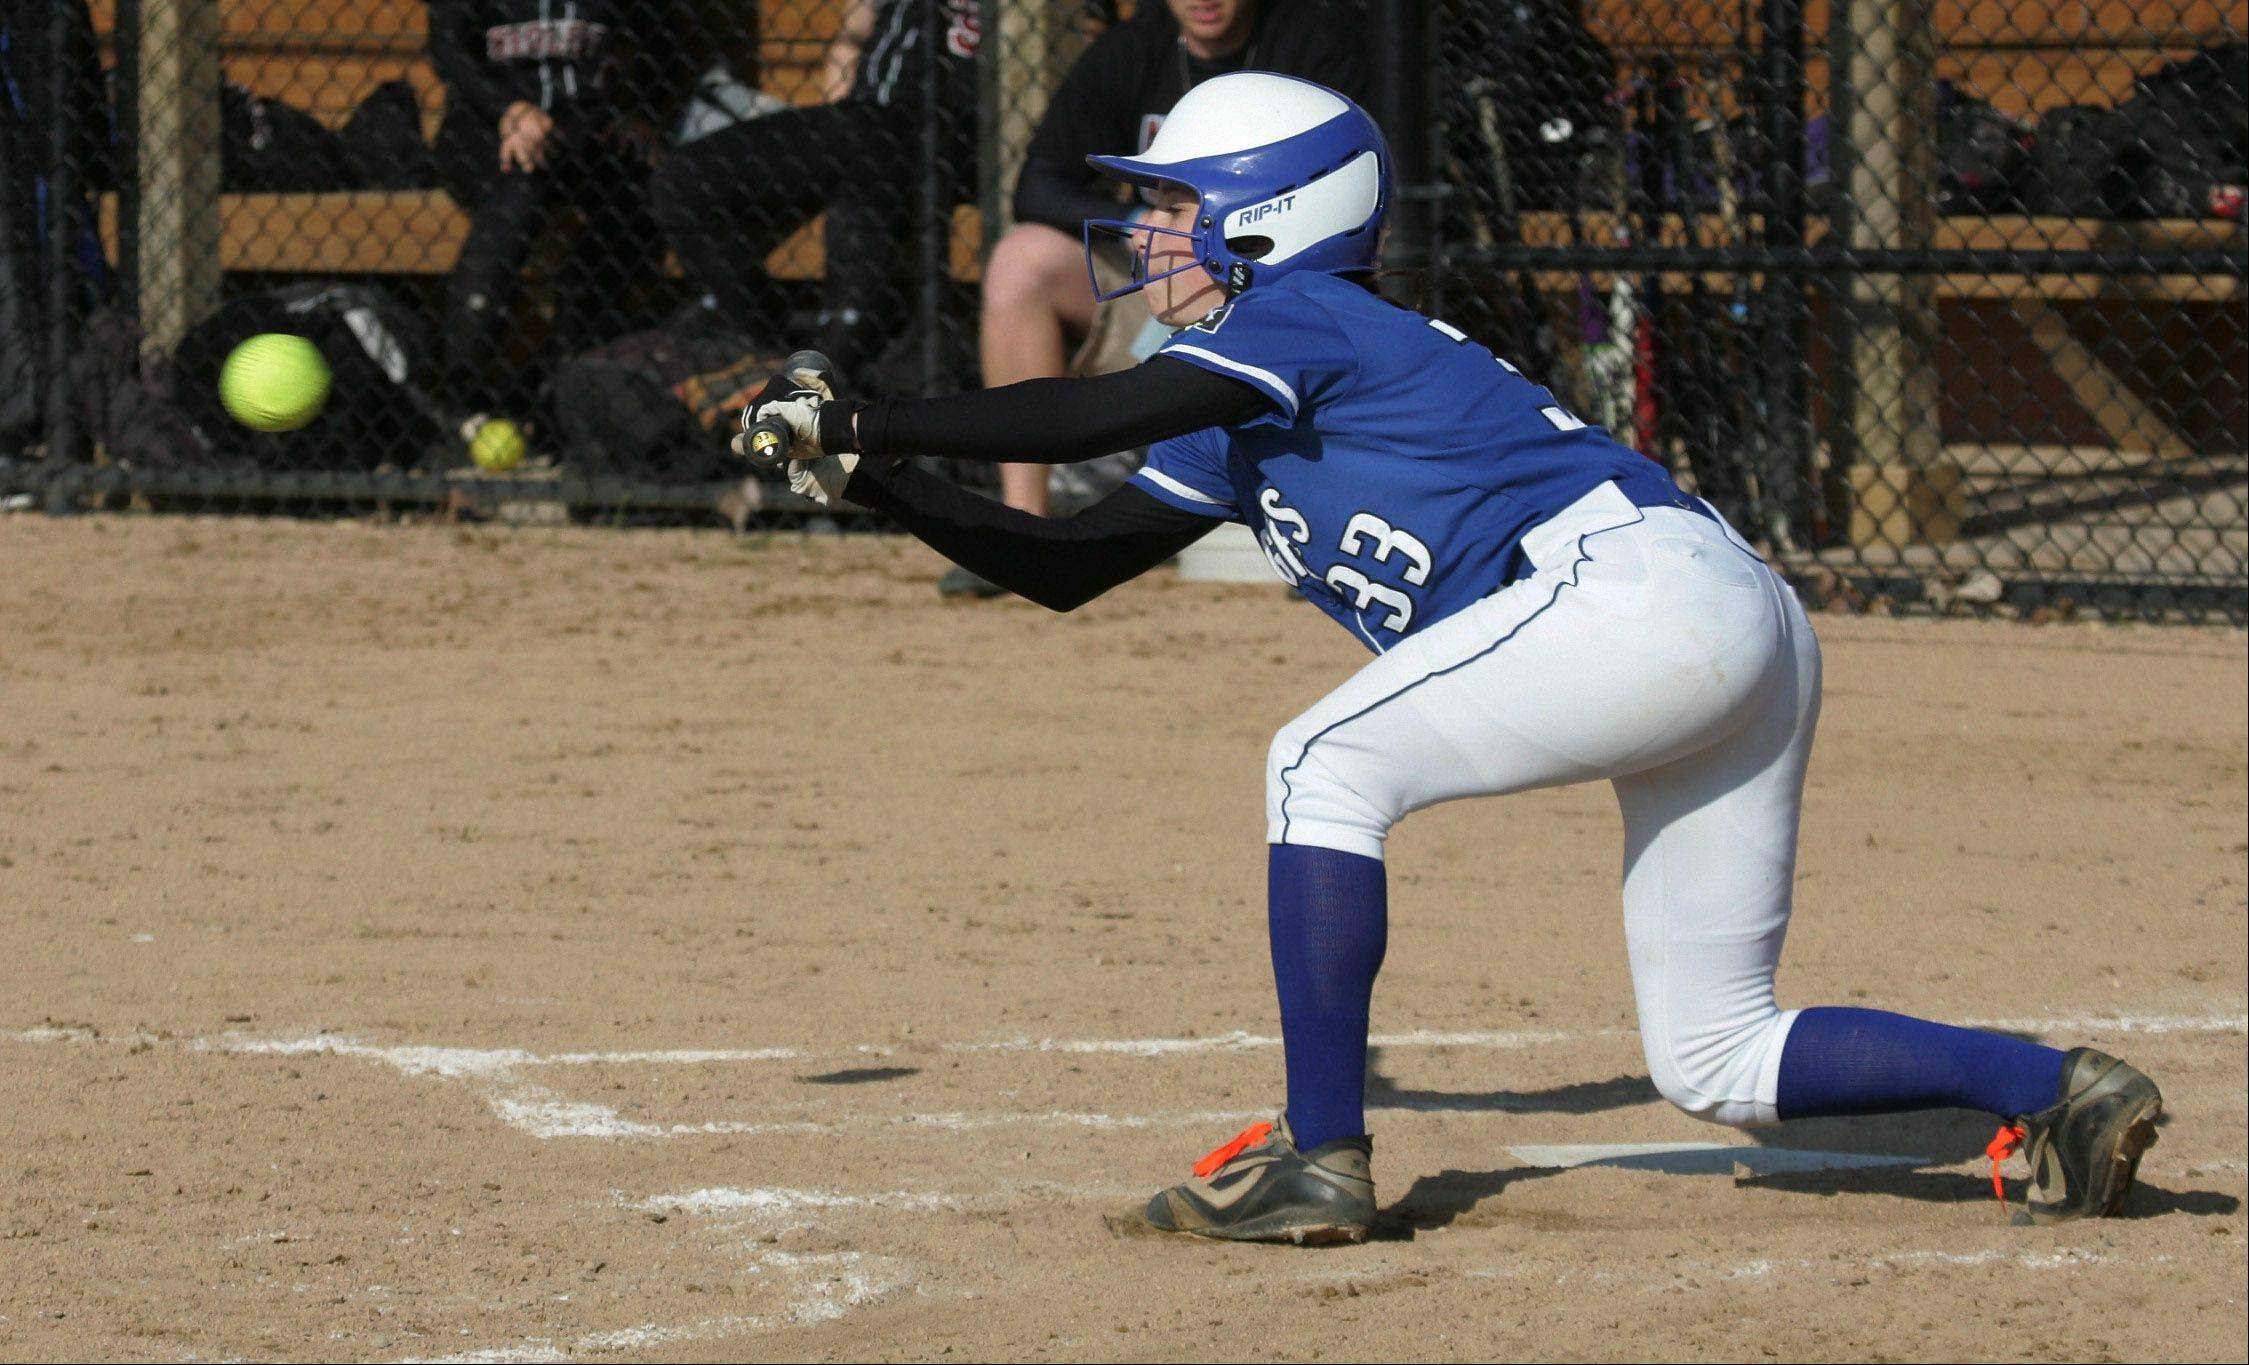 Vernon Hills batter Carly Alm bunts in the first inning Tuesday.